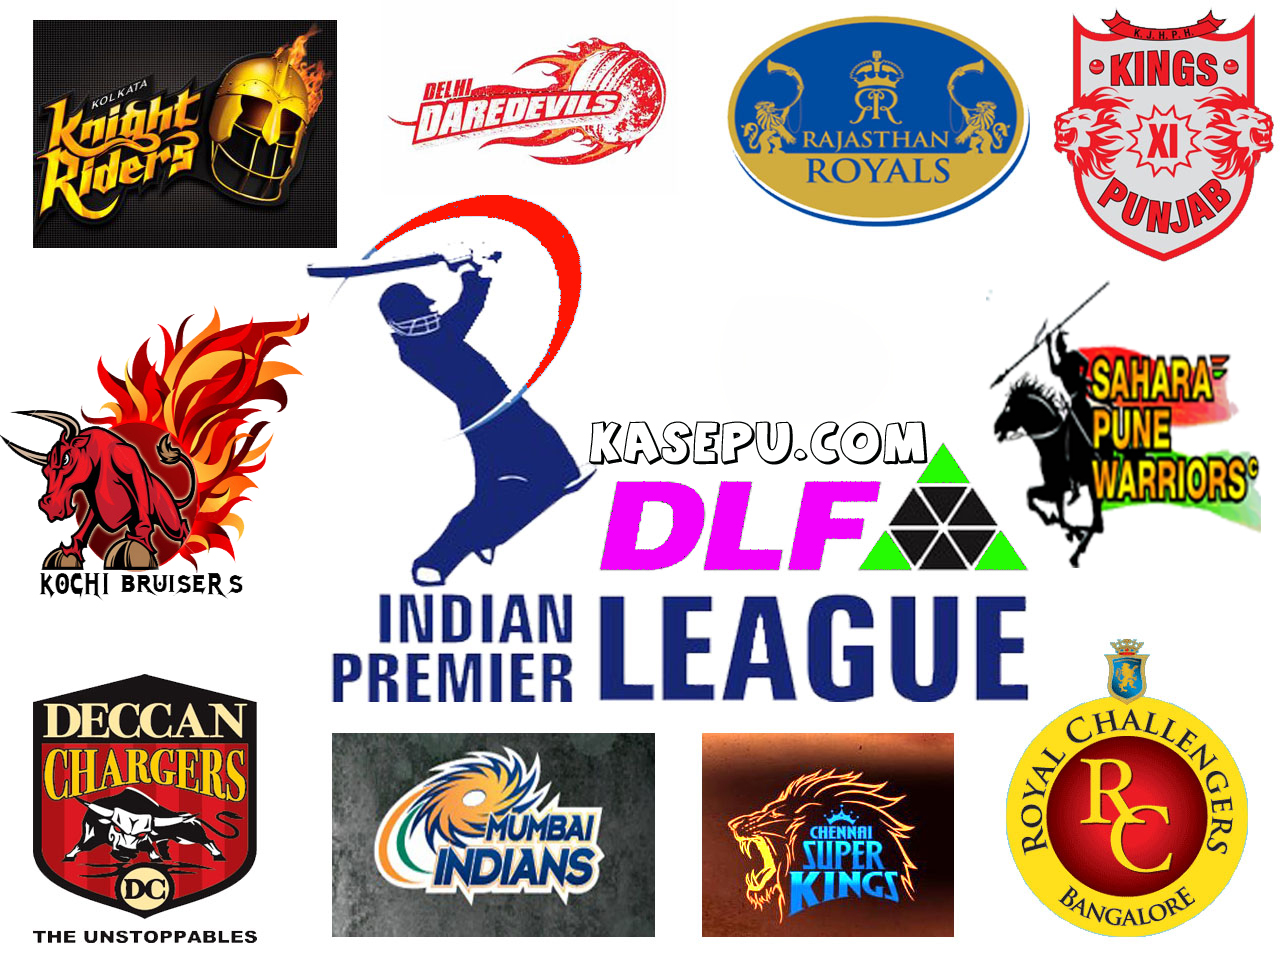 Is IPL really more than a rising platform? - InstaBlogs - Global ...